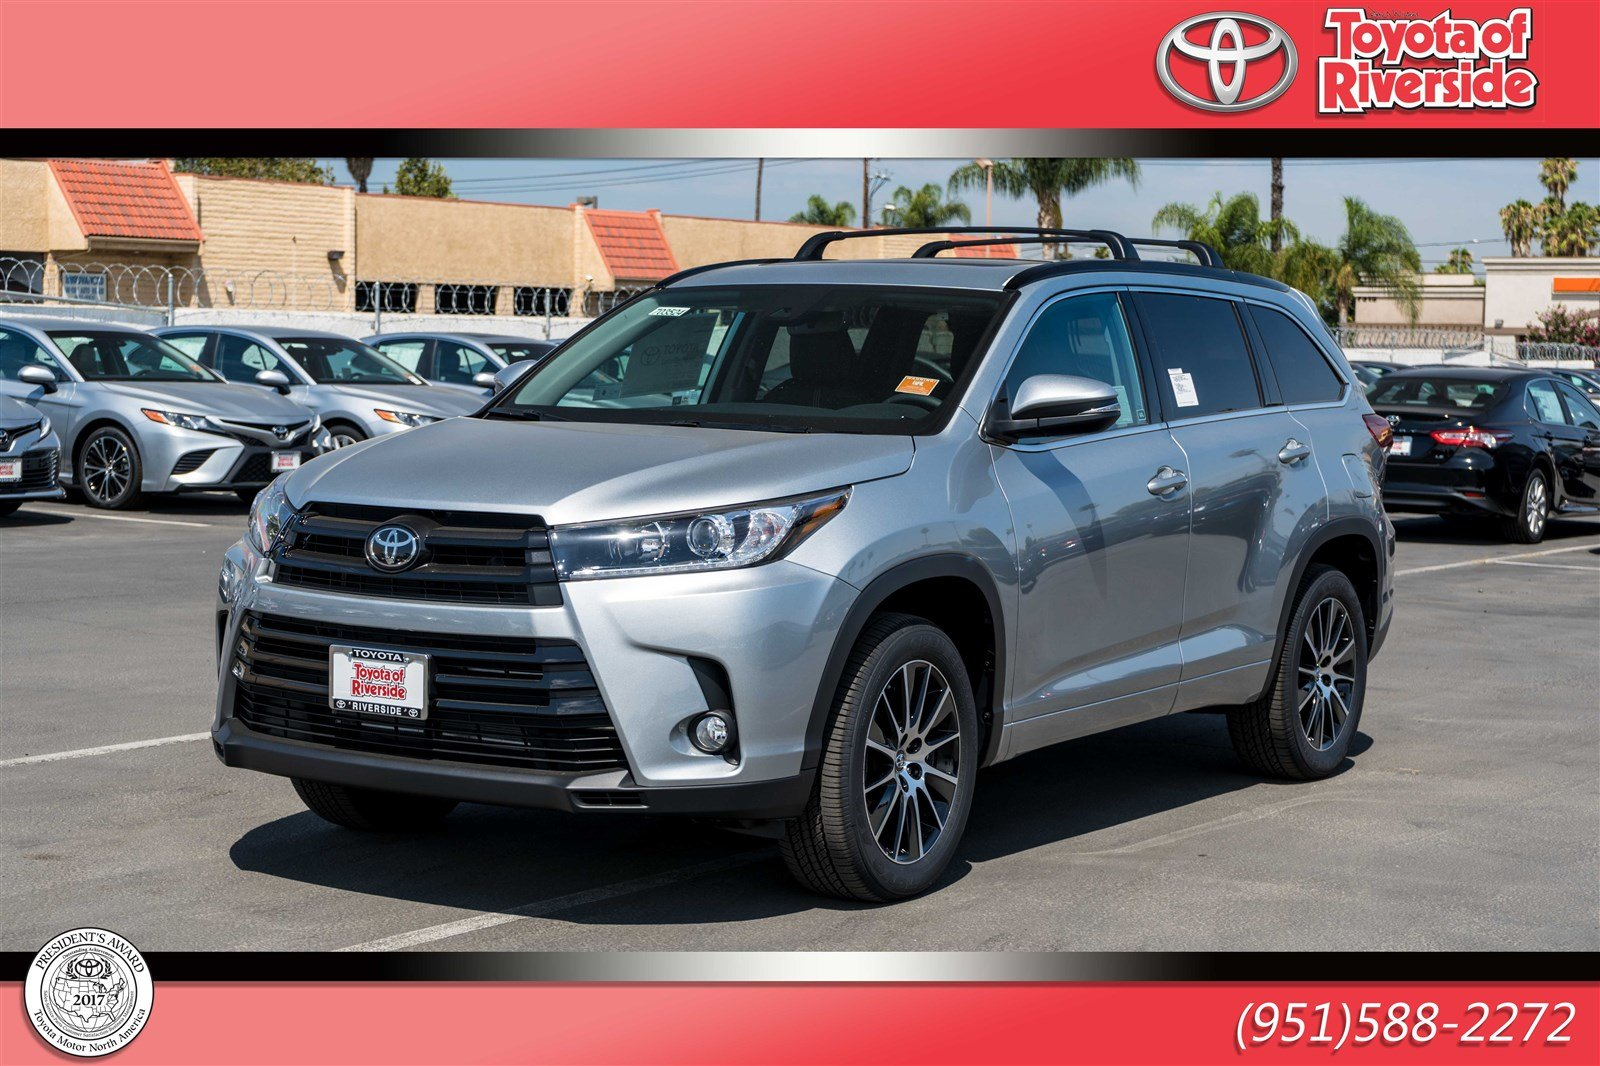 Toyota Highlander Owners Manual: Capacity and distribution